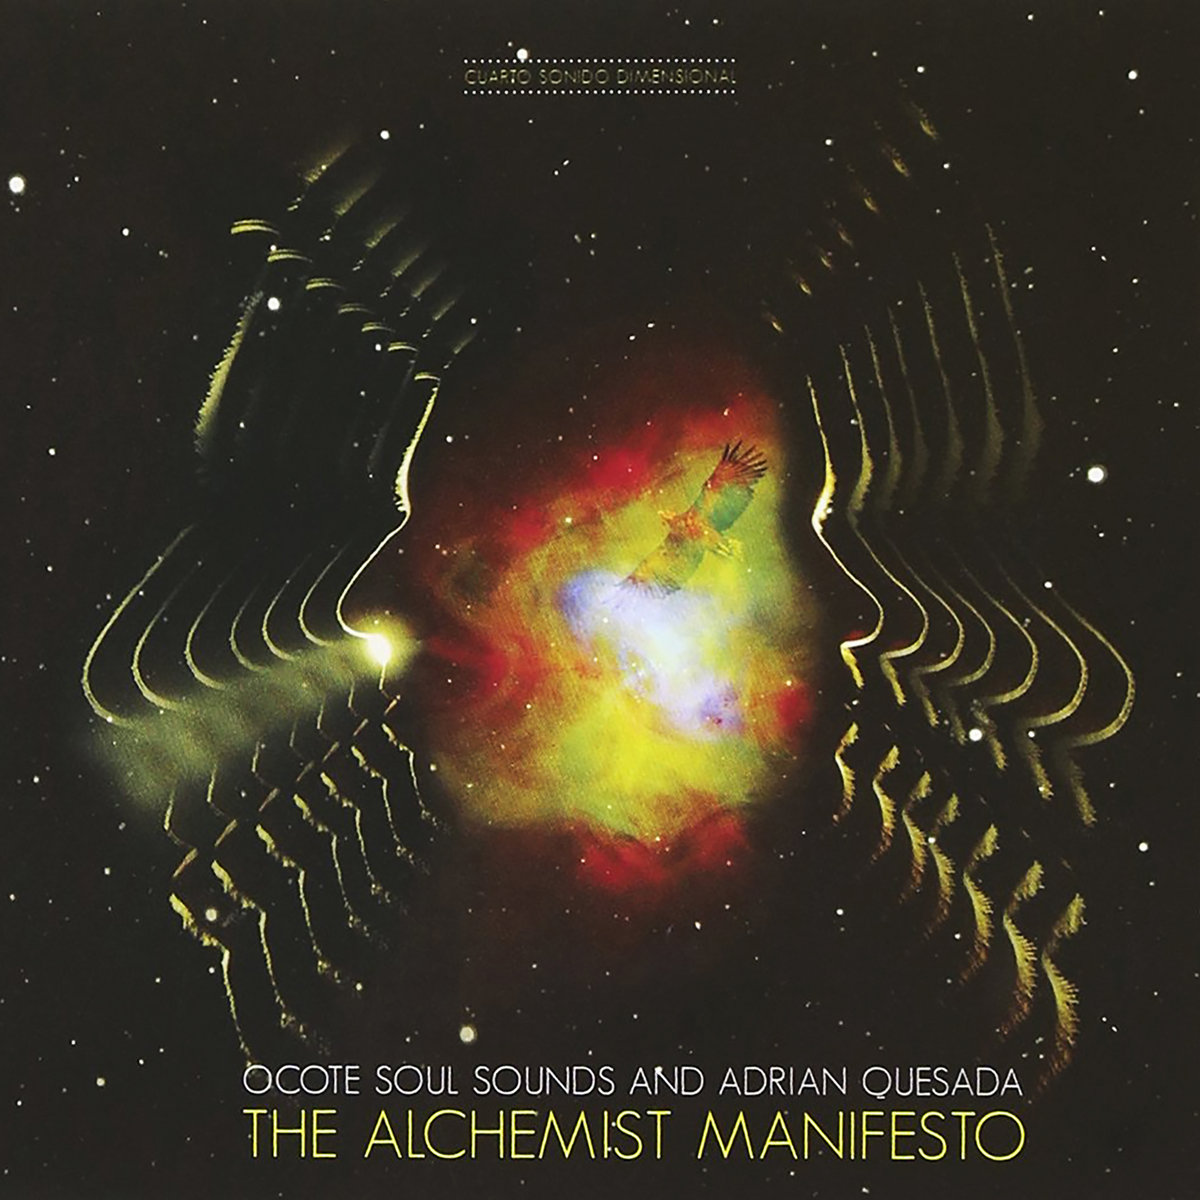 the alchemist manifesto ocote soul sounds by ocote soul sounds